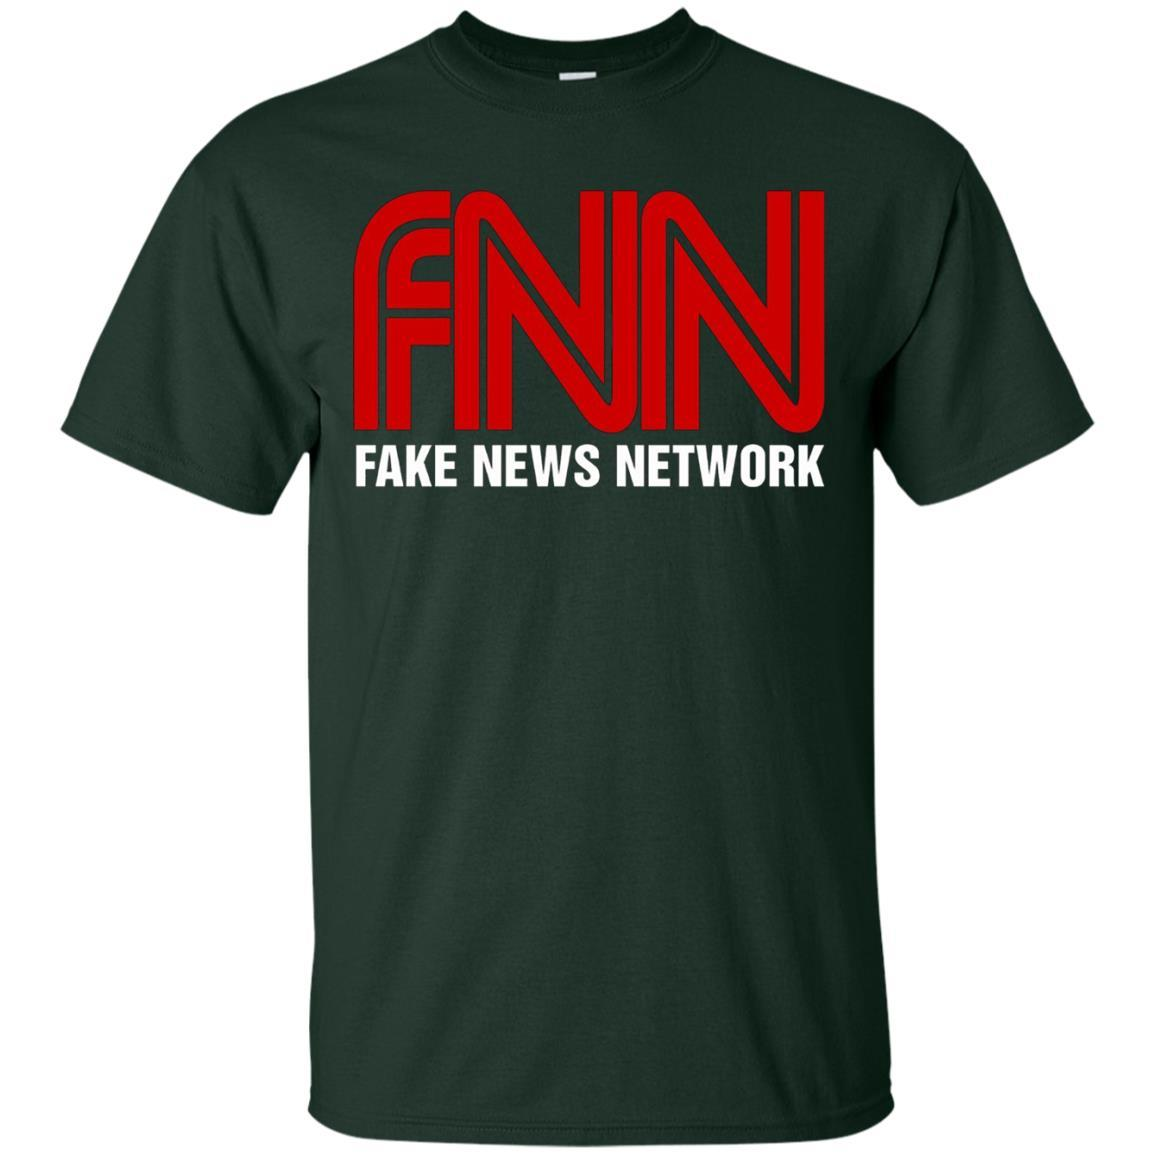 Fake News Network T-Shirt - Funny FNN Logo Humor Quote Tee Forest / 5XL